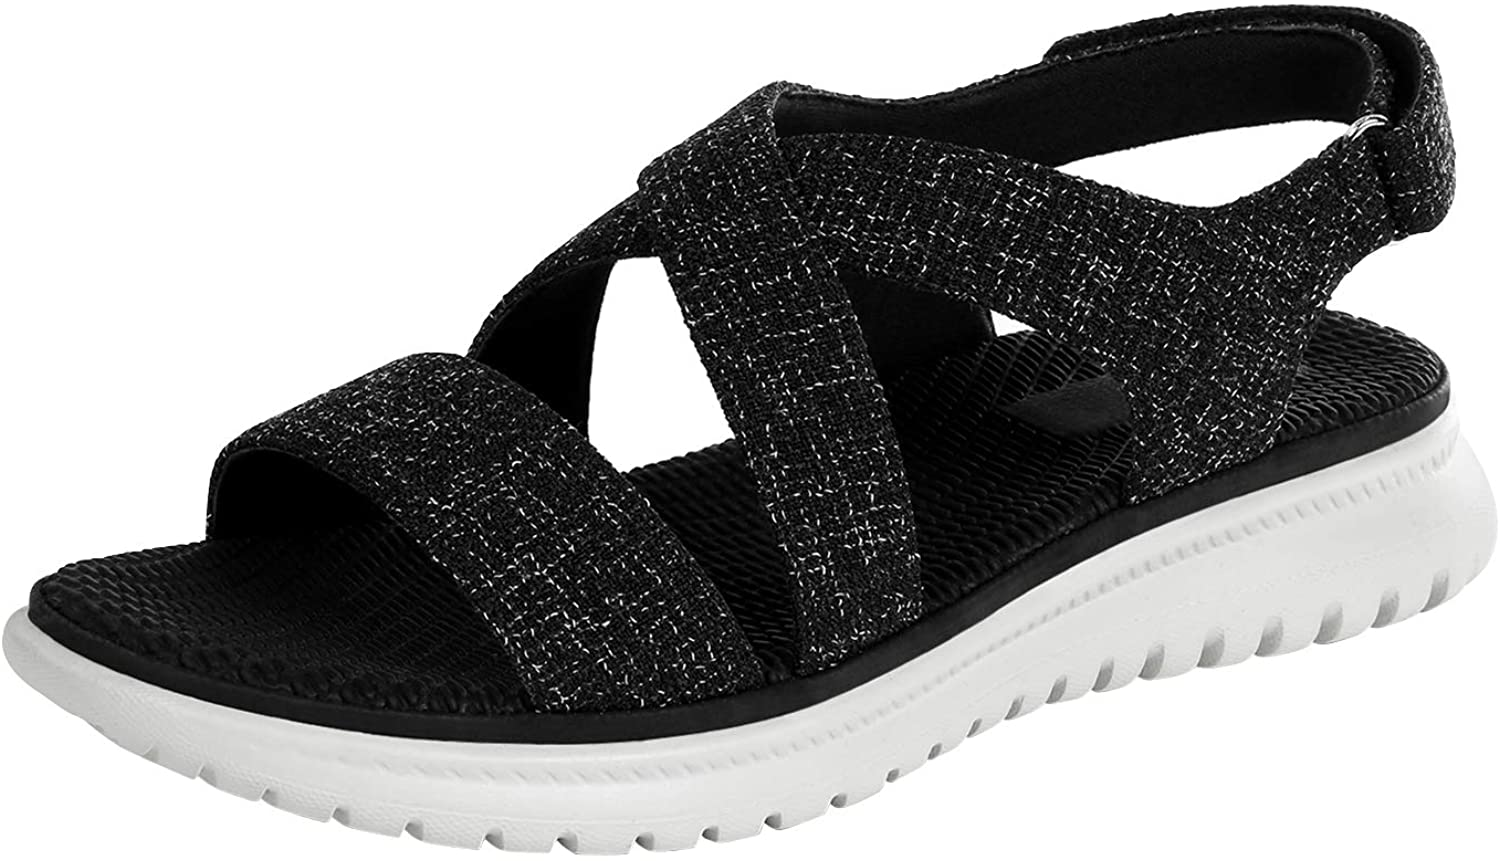 Solacozy Casual Summer Sandals Outdoor OFFicial New sales Women Sport for